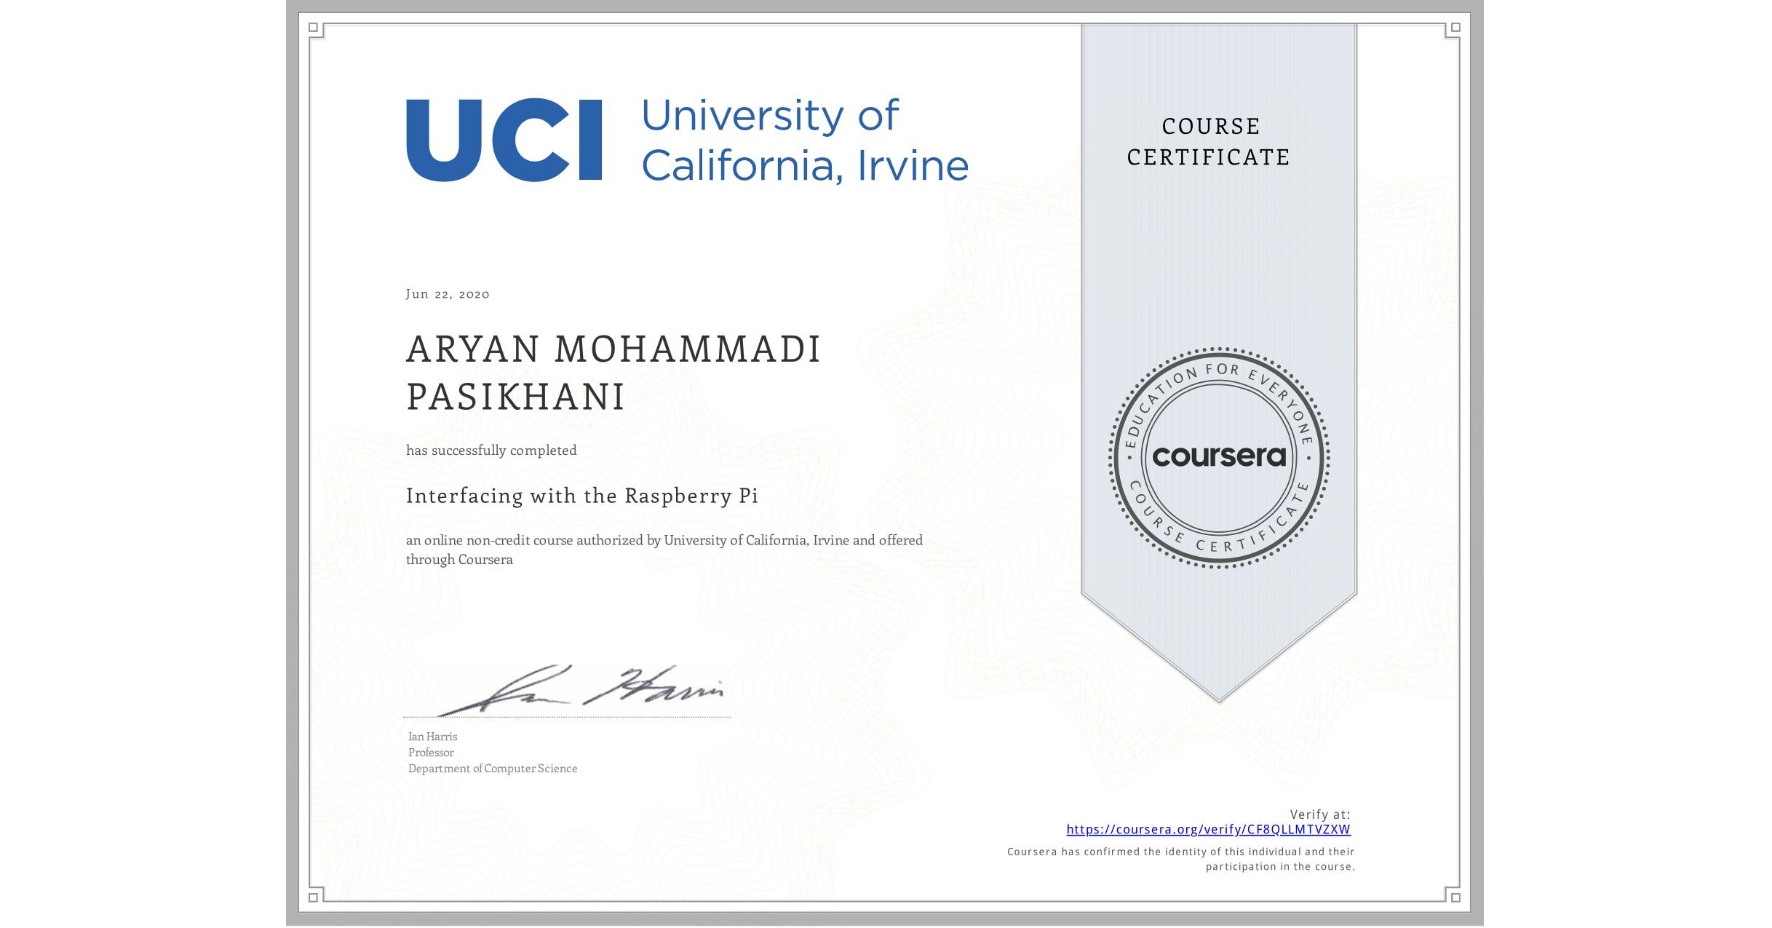 View certificate for ARYAN MOHAMMADI PASIKHANI, Interfacing with the Raspberry Pi, an online non-credit course authorized by University of California, Irvine and offered through Coursera